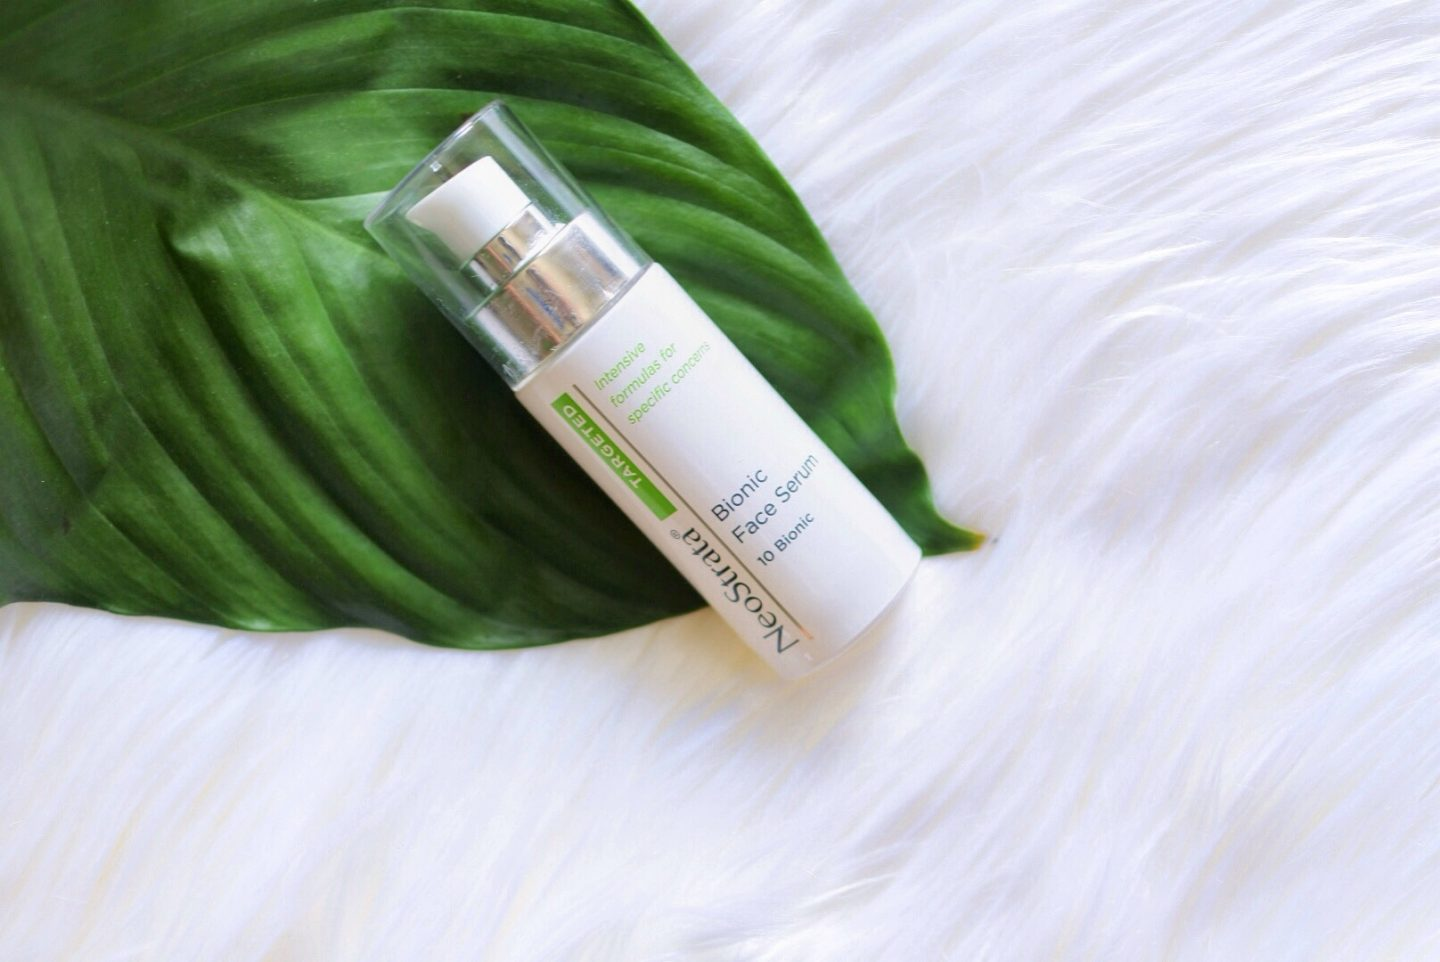 NeoStrata Bionic Face Serum Review